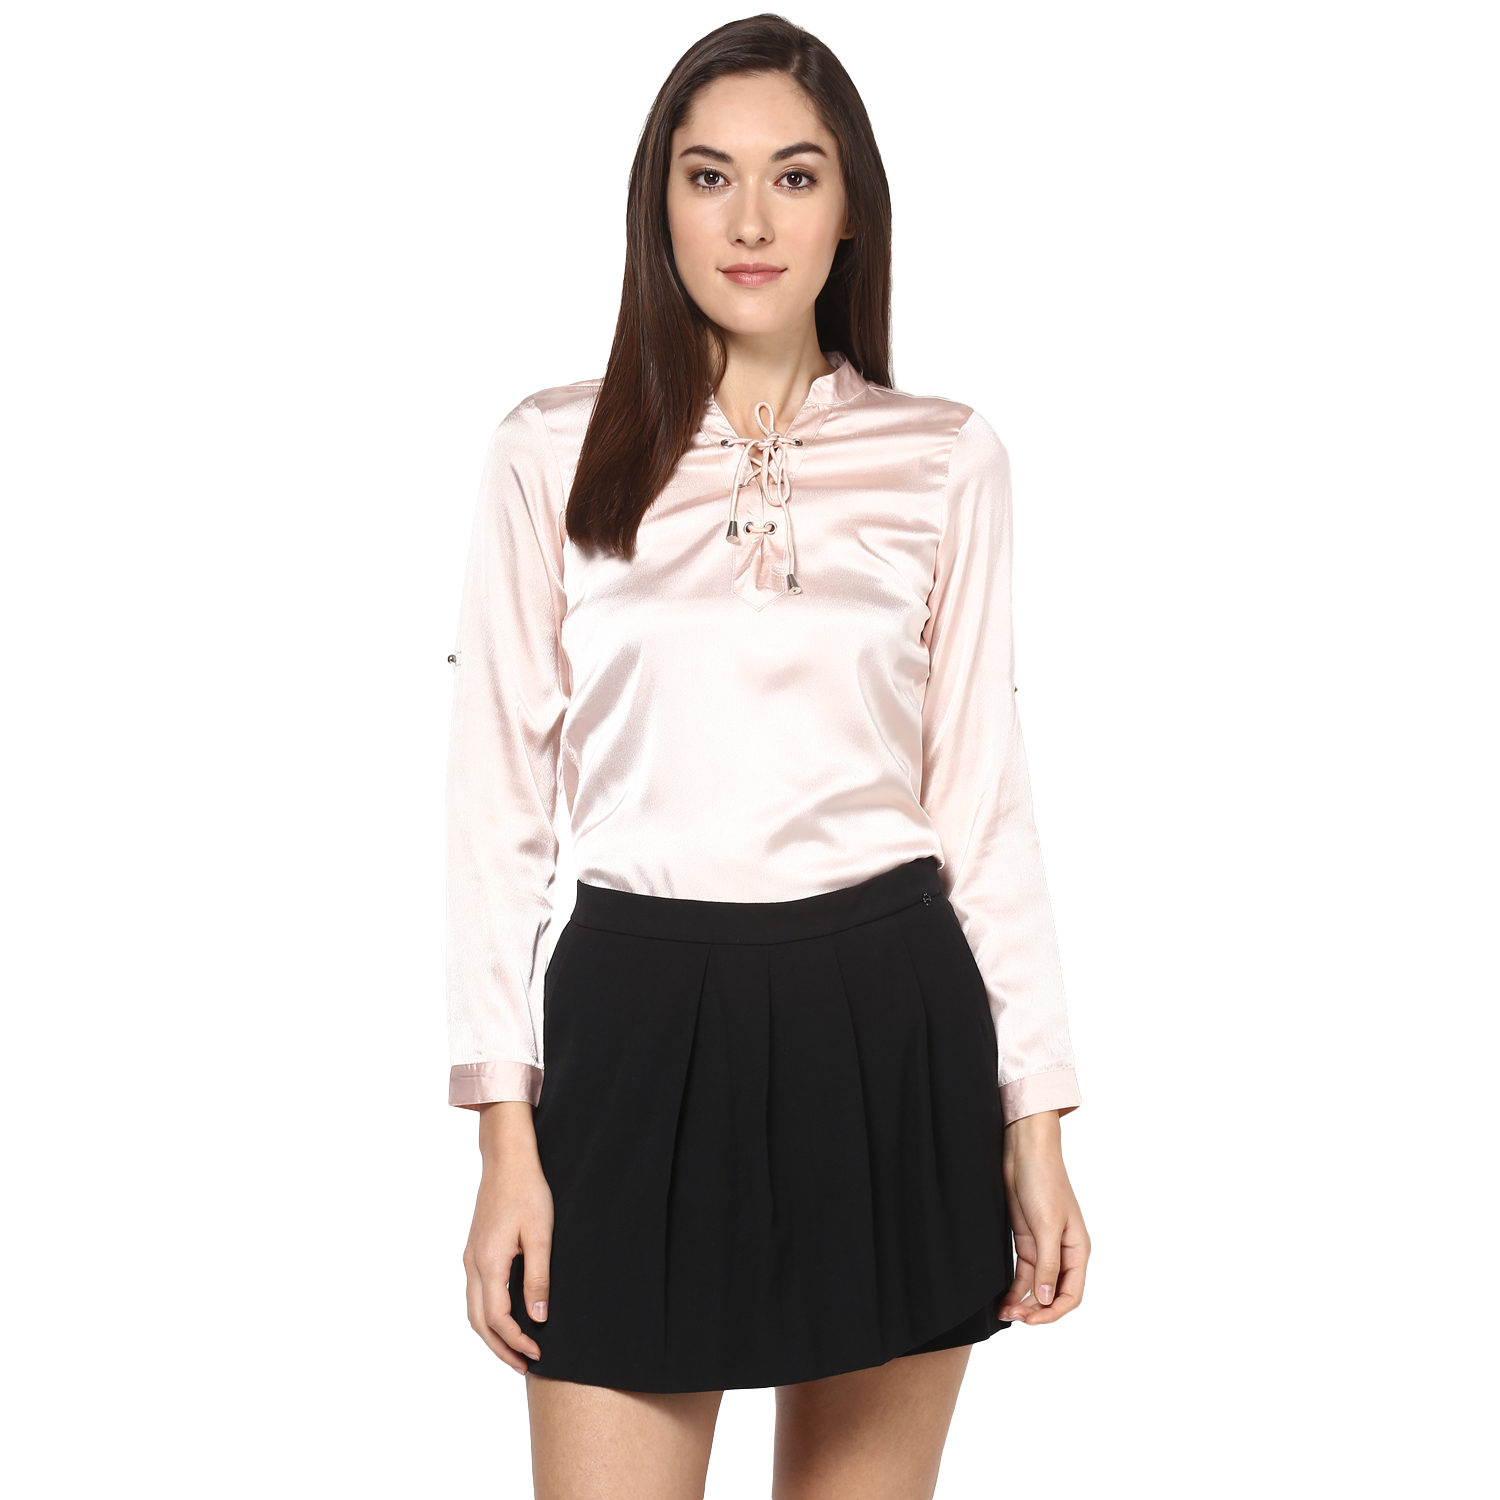 Zoys Casual Full Sleeve Solid Women's Pink Top